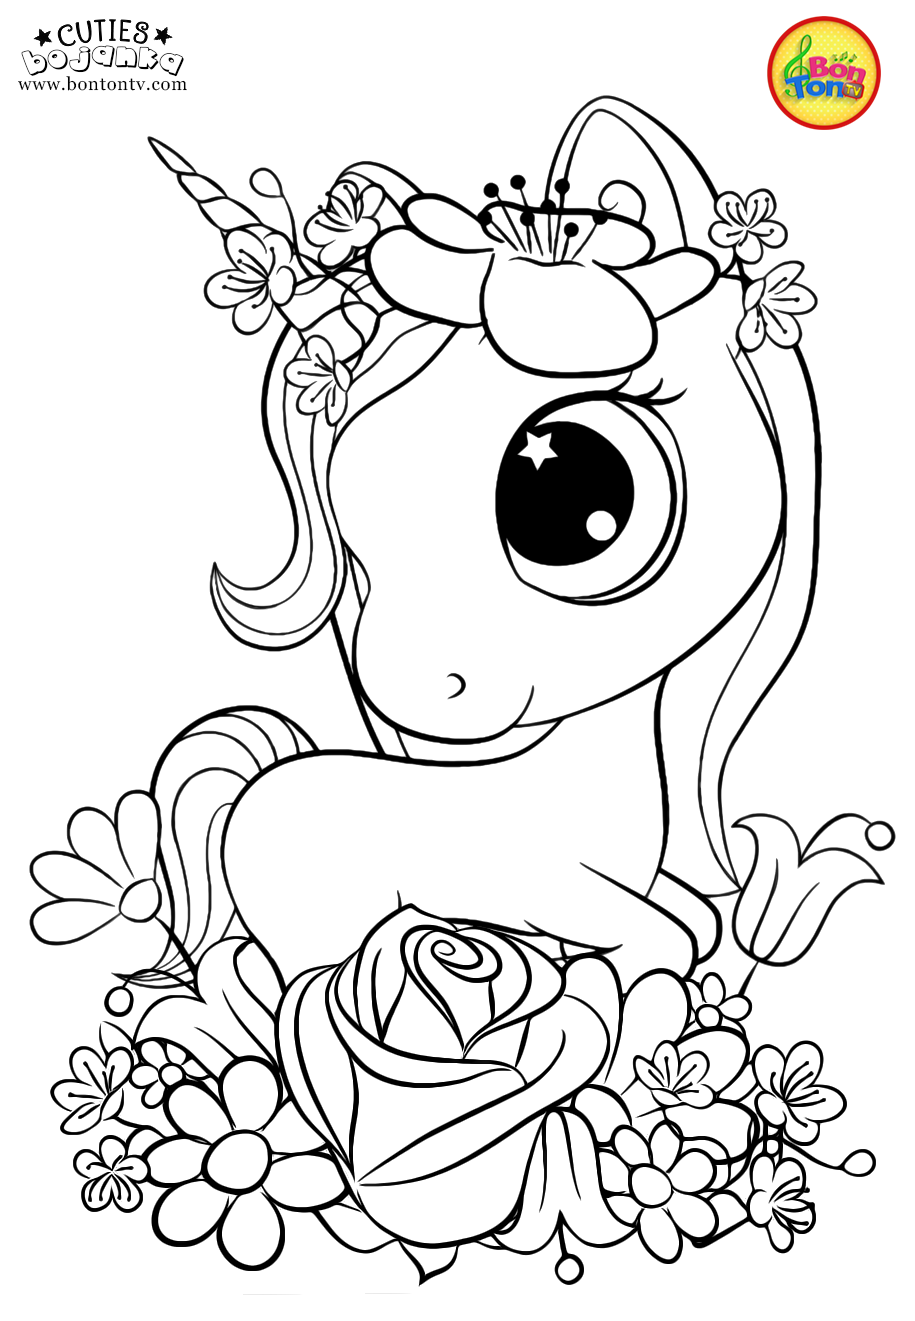 Cuties Coloring Pages For Kids Free Preschool Printables Slatkice Bojanke Cute Ani Mermaid Coloring Pages Free Kids Coloring Pages Unicorn Coloring Pages